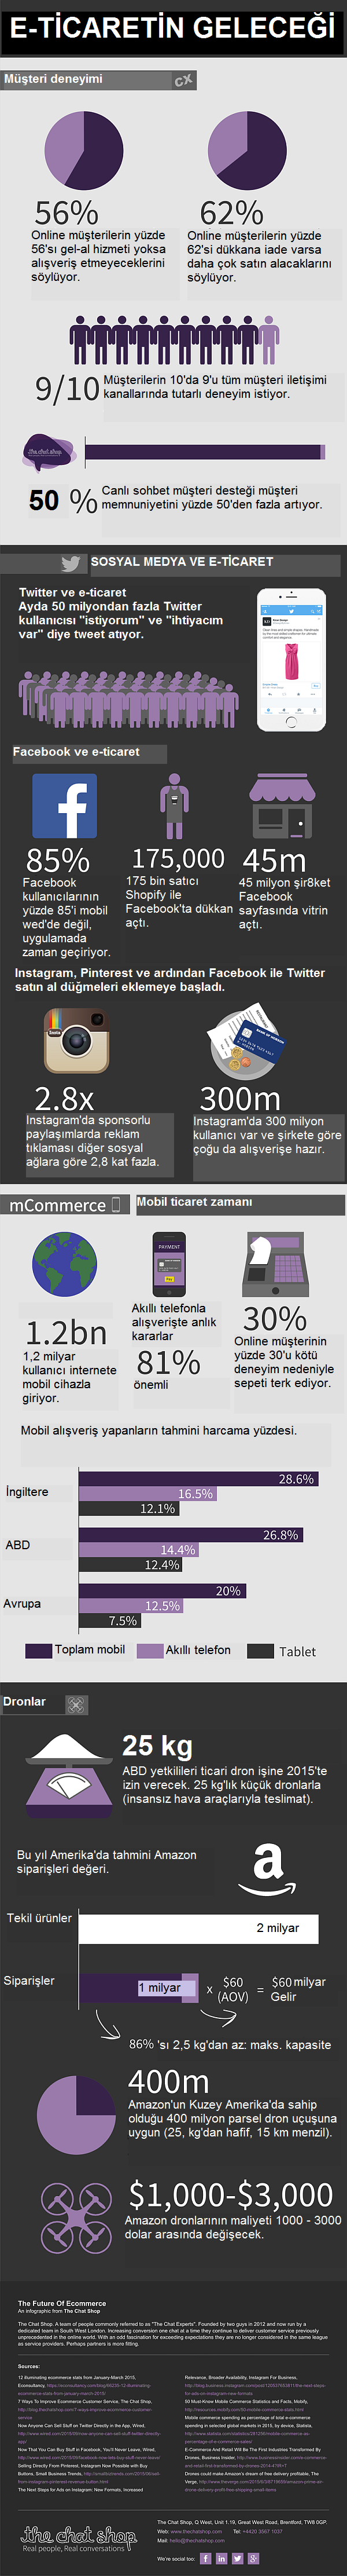 the_future_of_ecommerce_infographic_v21